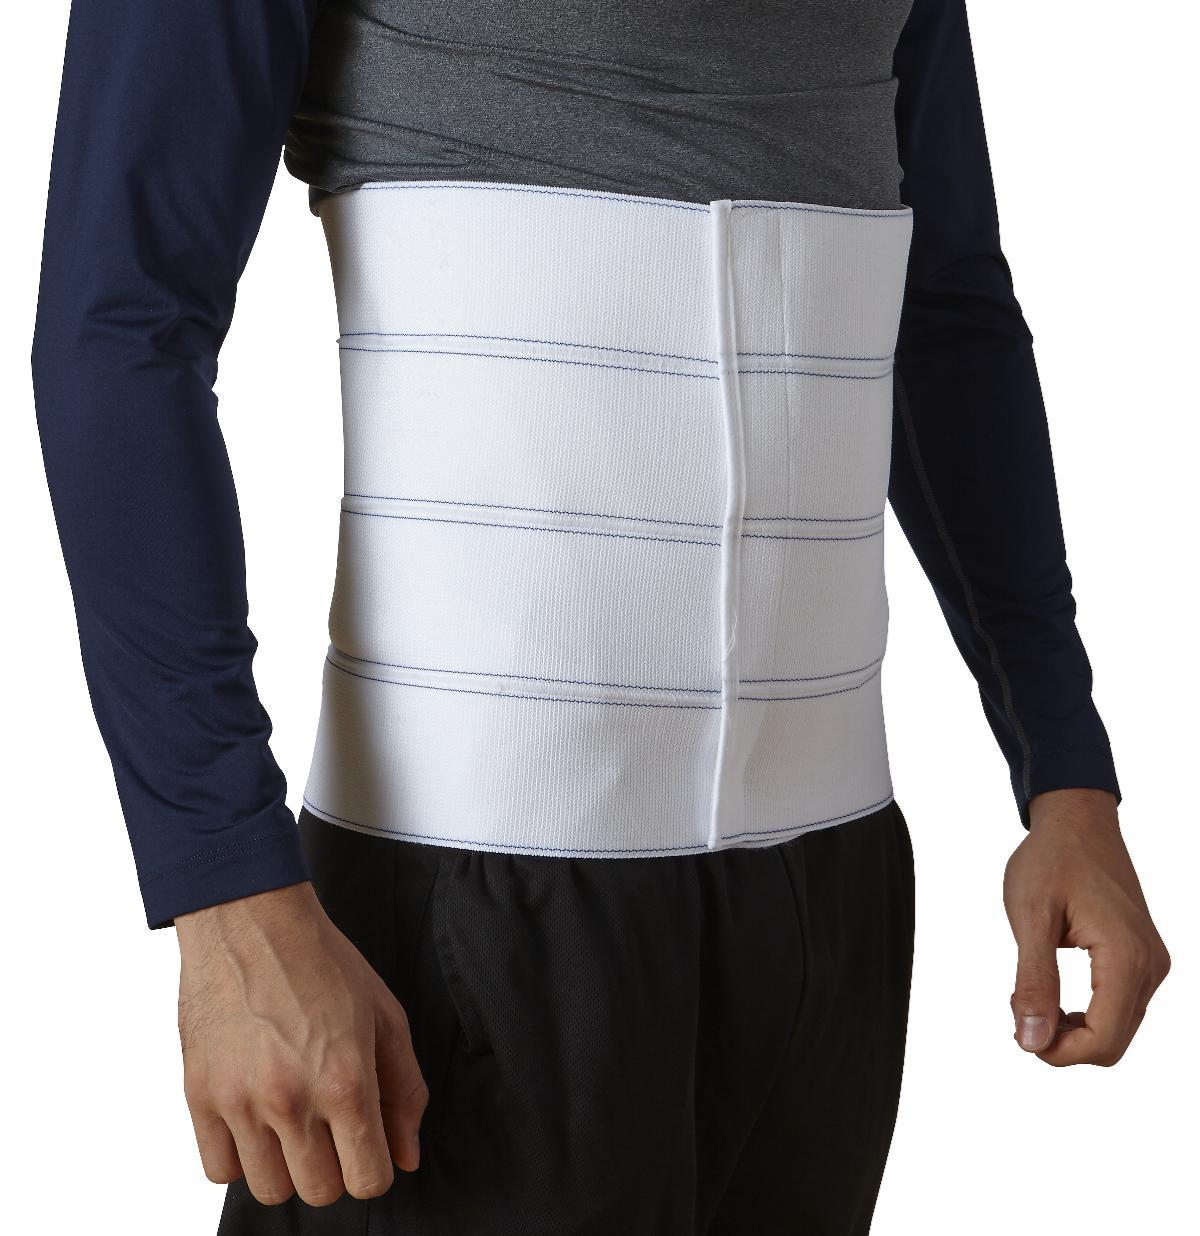 Therapy & Fitness Orthopedic Soft Goods Abdominal Binders & Ribs Belts - Ort213003xl - Binder Abdominal12 4-panl Std 3xl Ea ORT213003XL